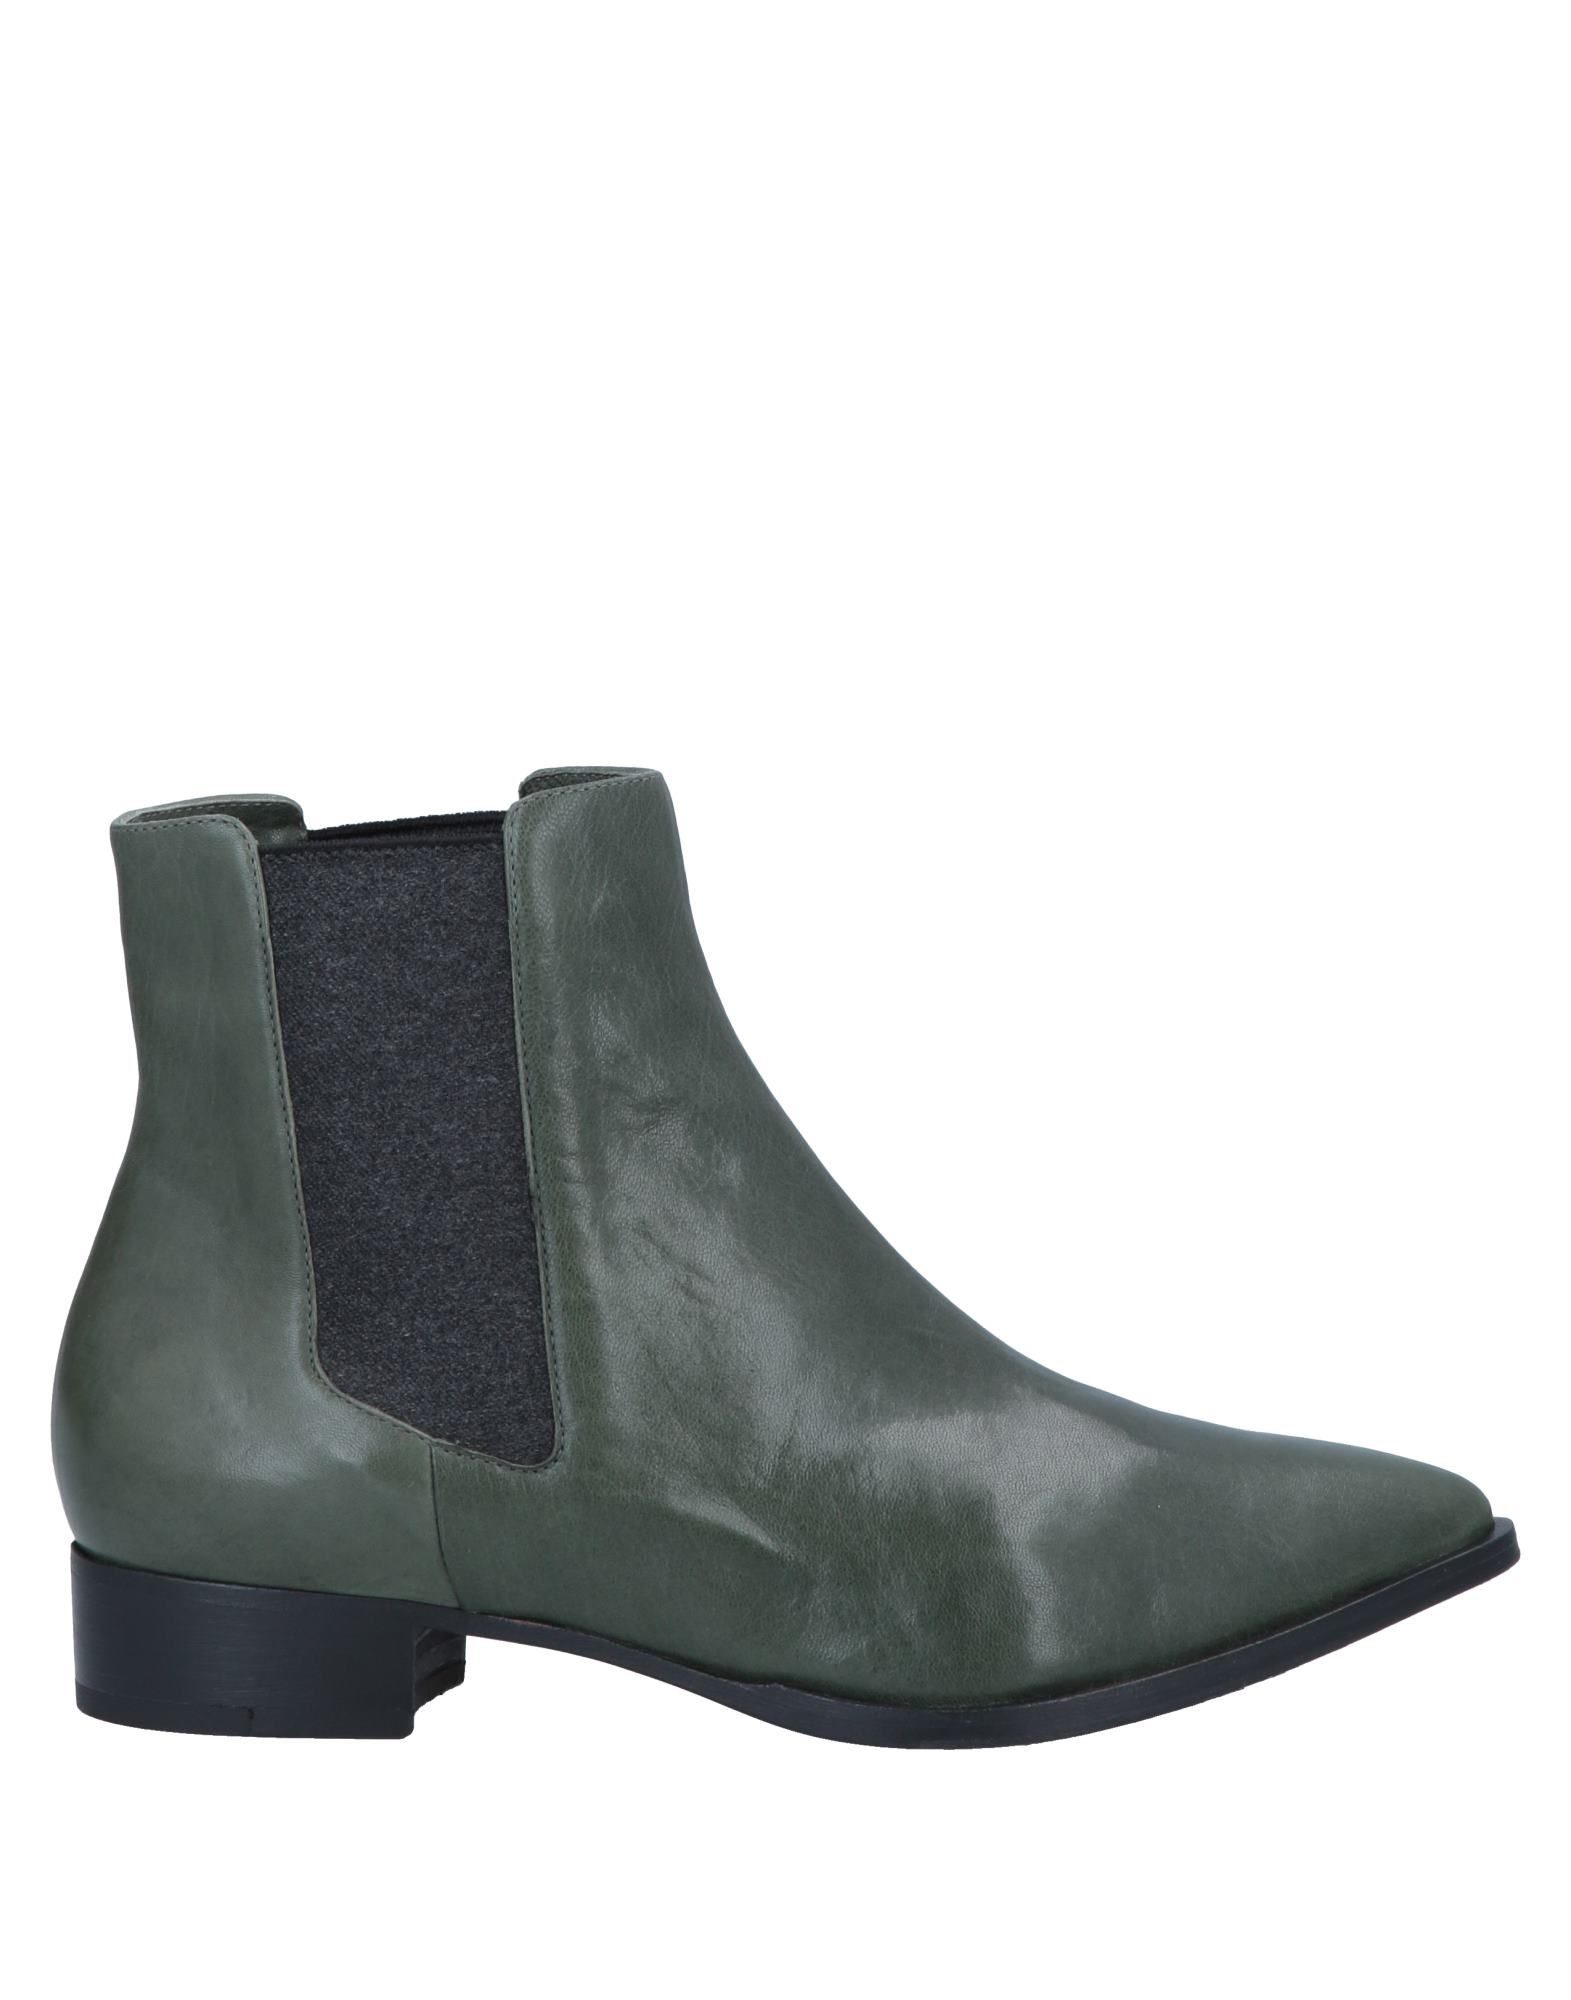 Alberto Fermani Boots ANKLE BOOTS